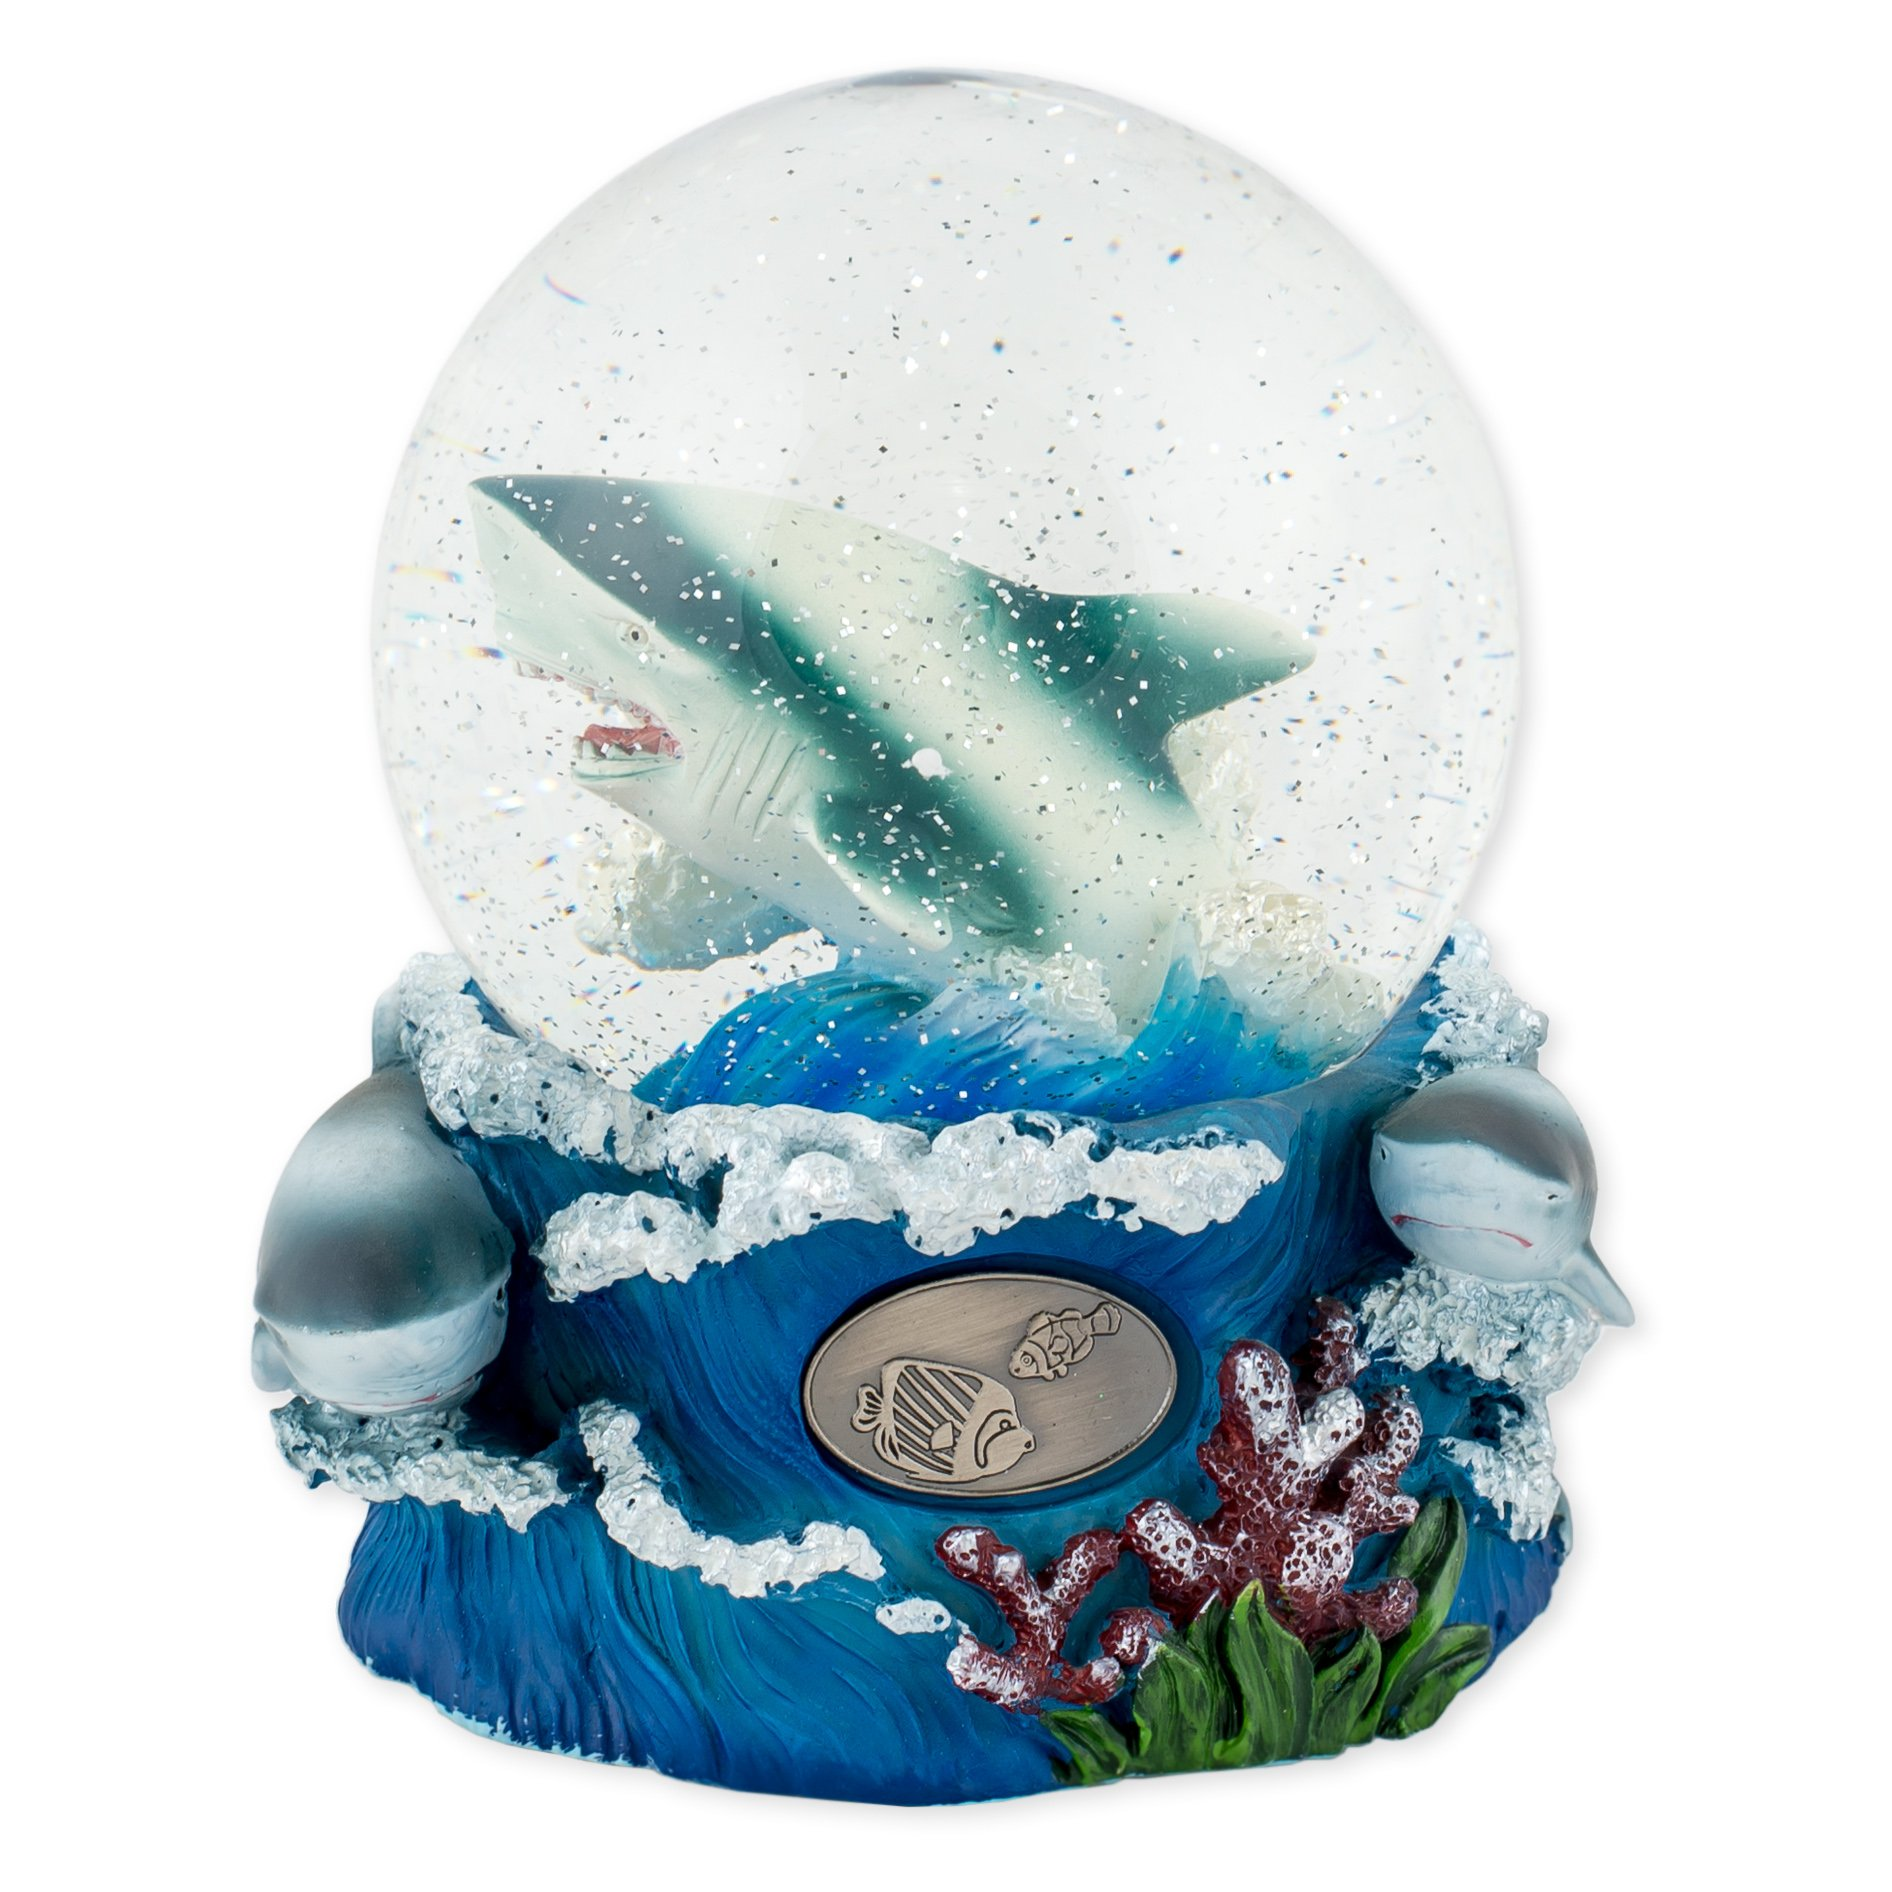 Swimming Ocean Shark 100mm Resin Glitter Water Globe Plays Tune Over the Waves